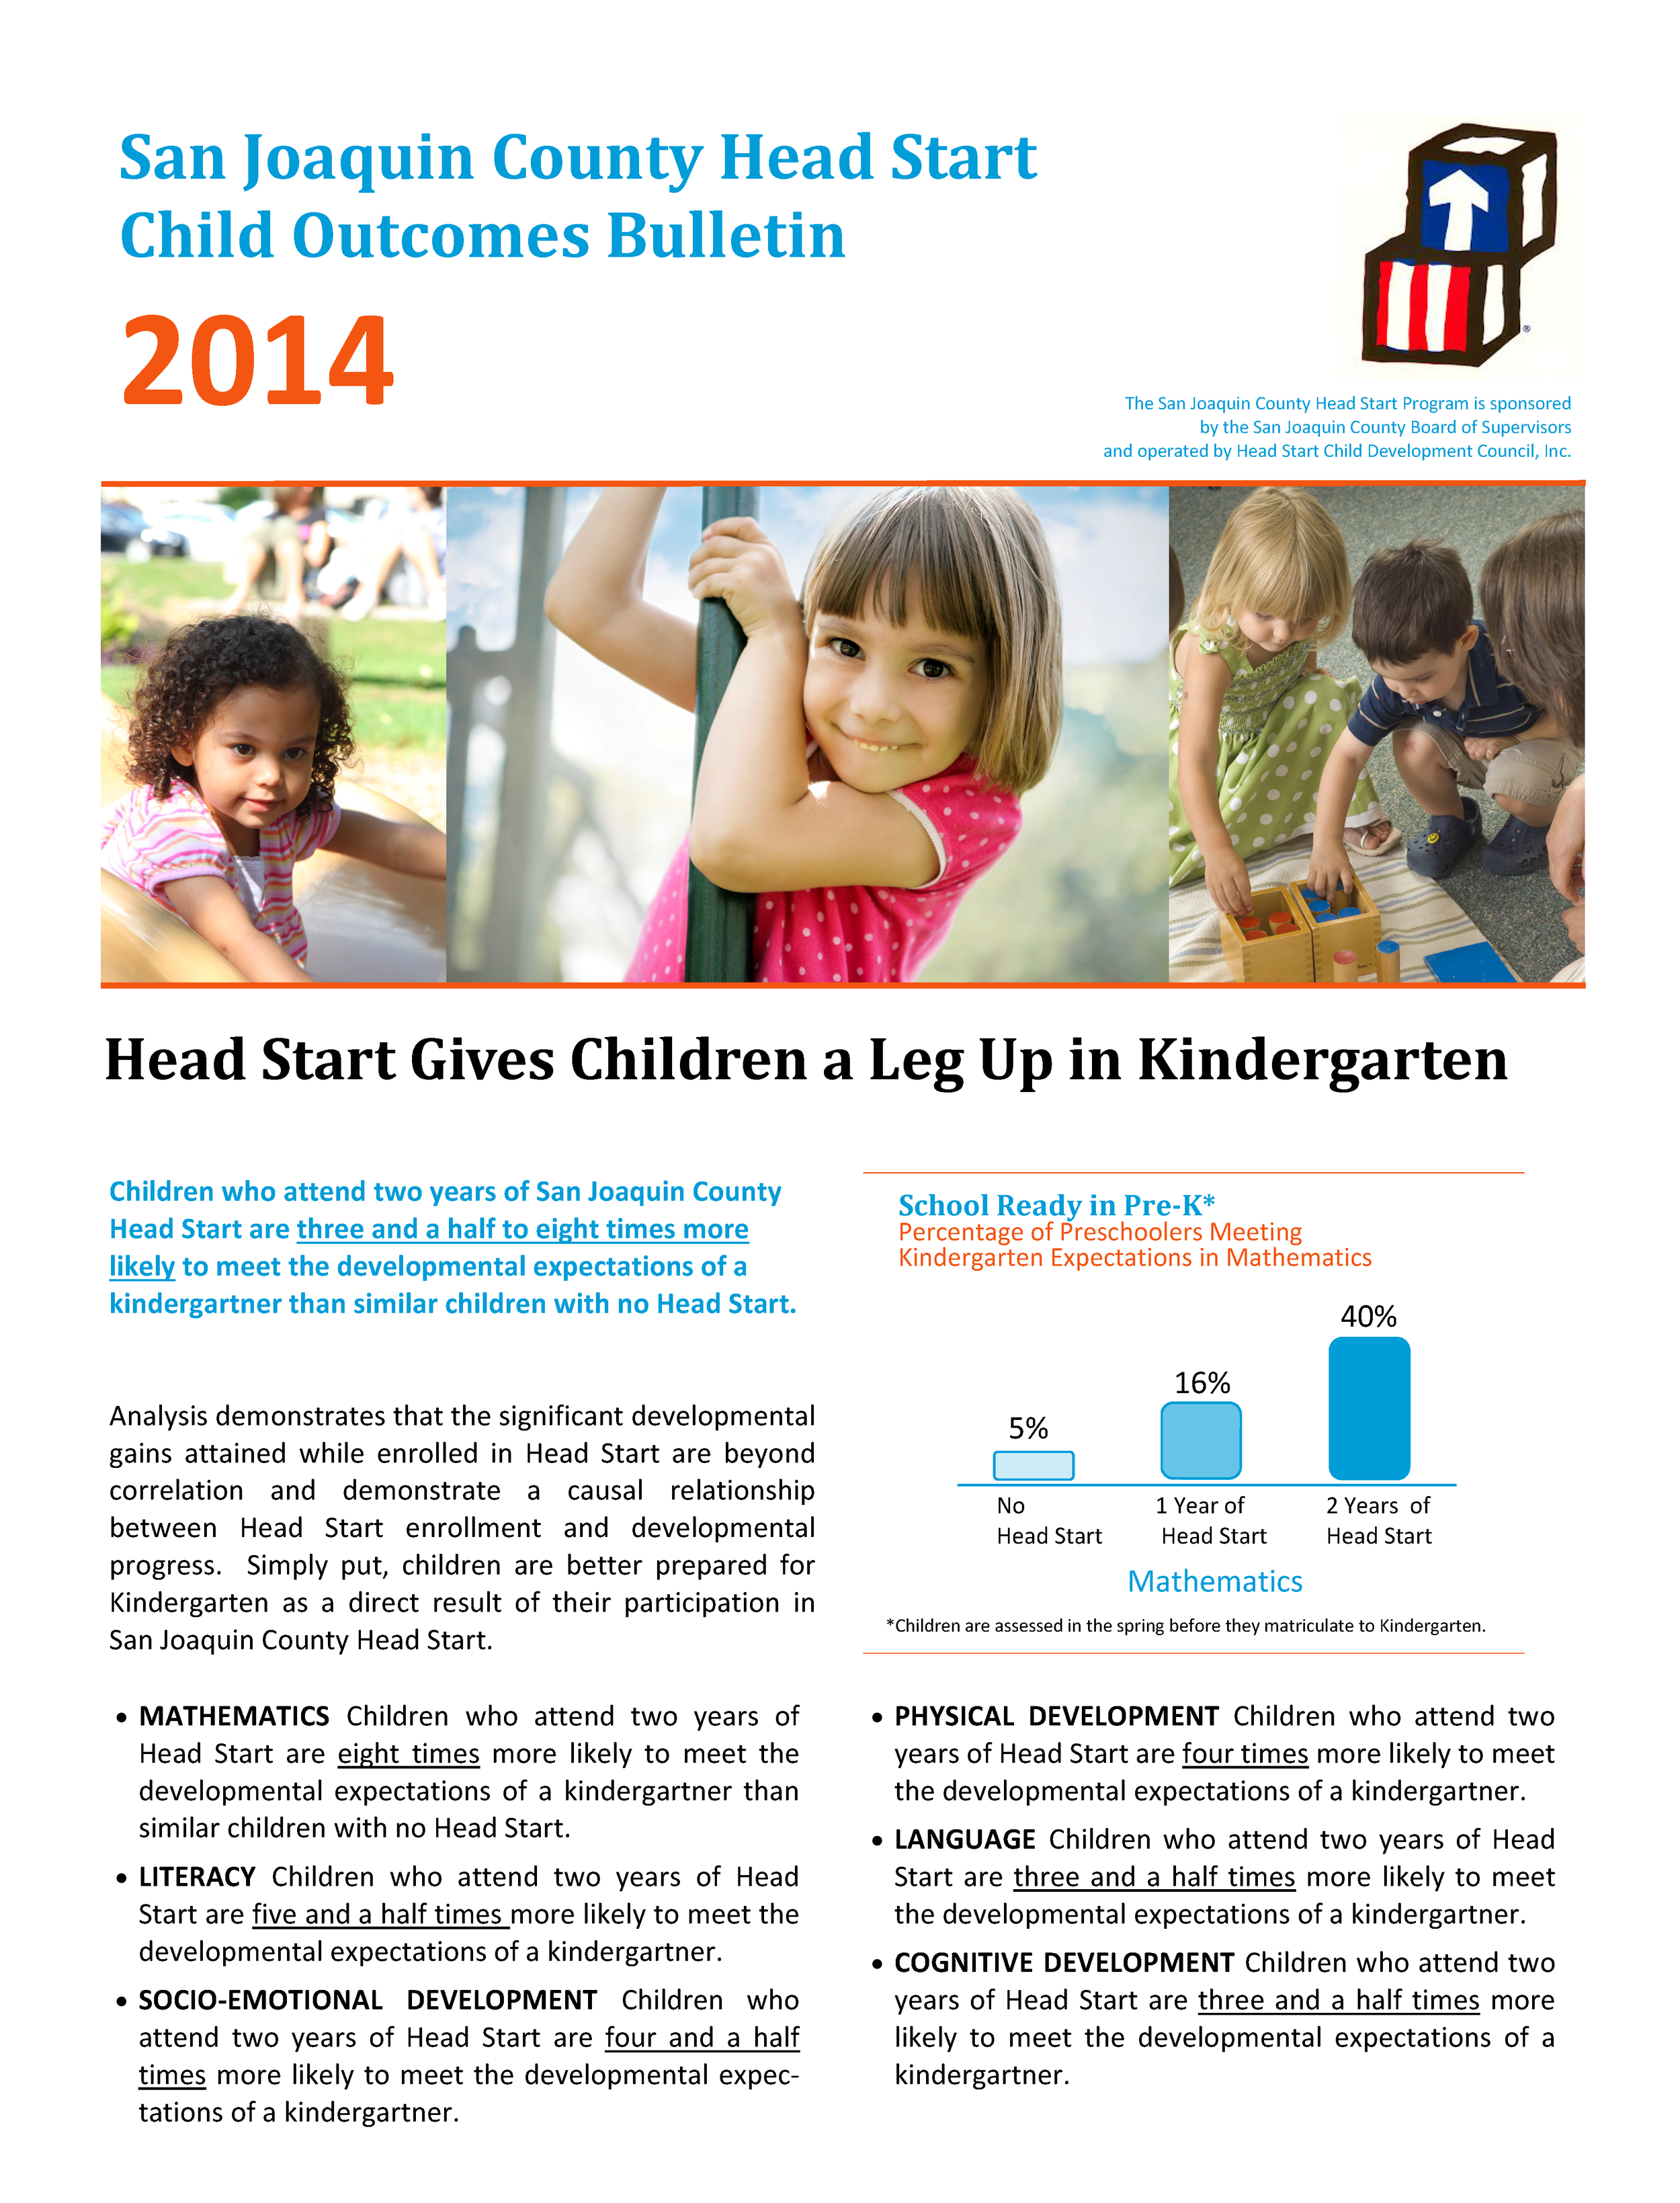 San Joaquin Head Start Program Impact Analysis 2014